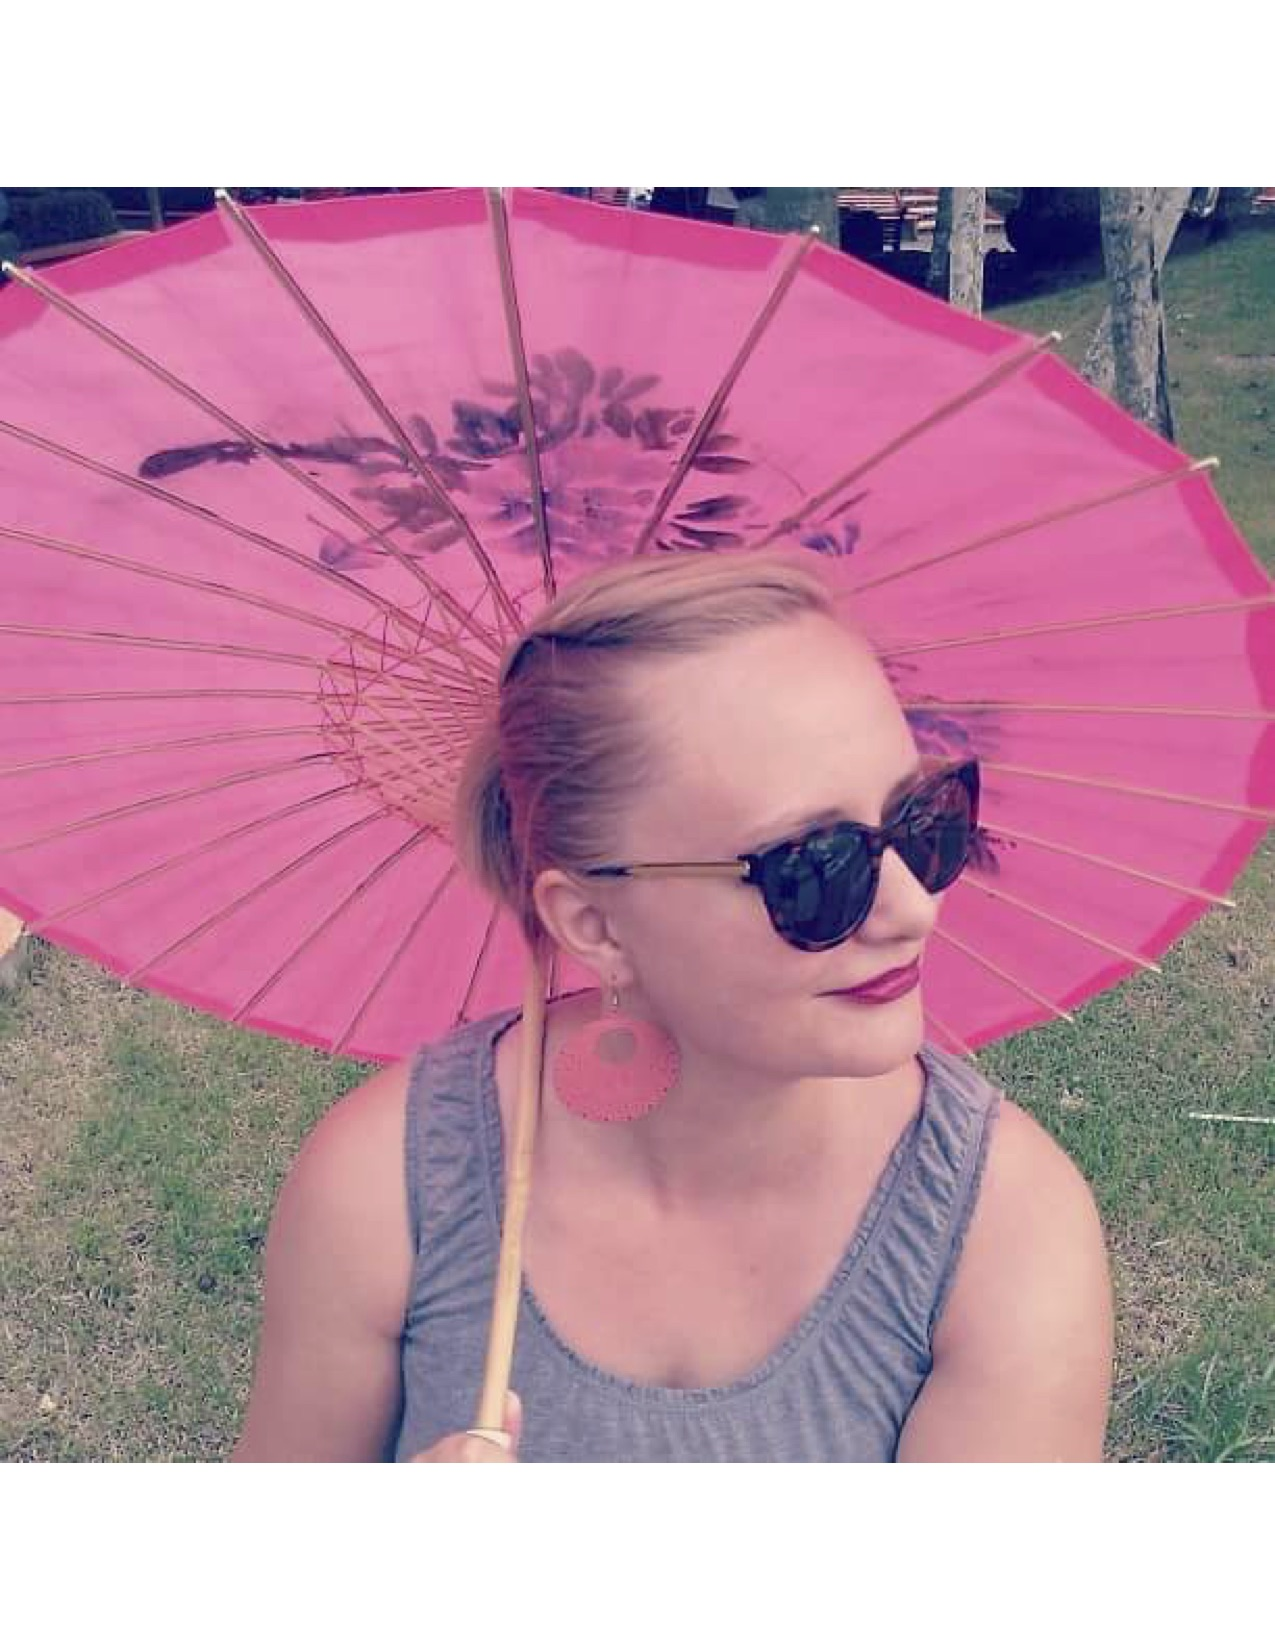 Krista with said Parasol used in mugging attack